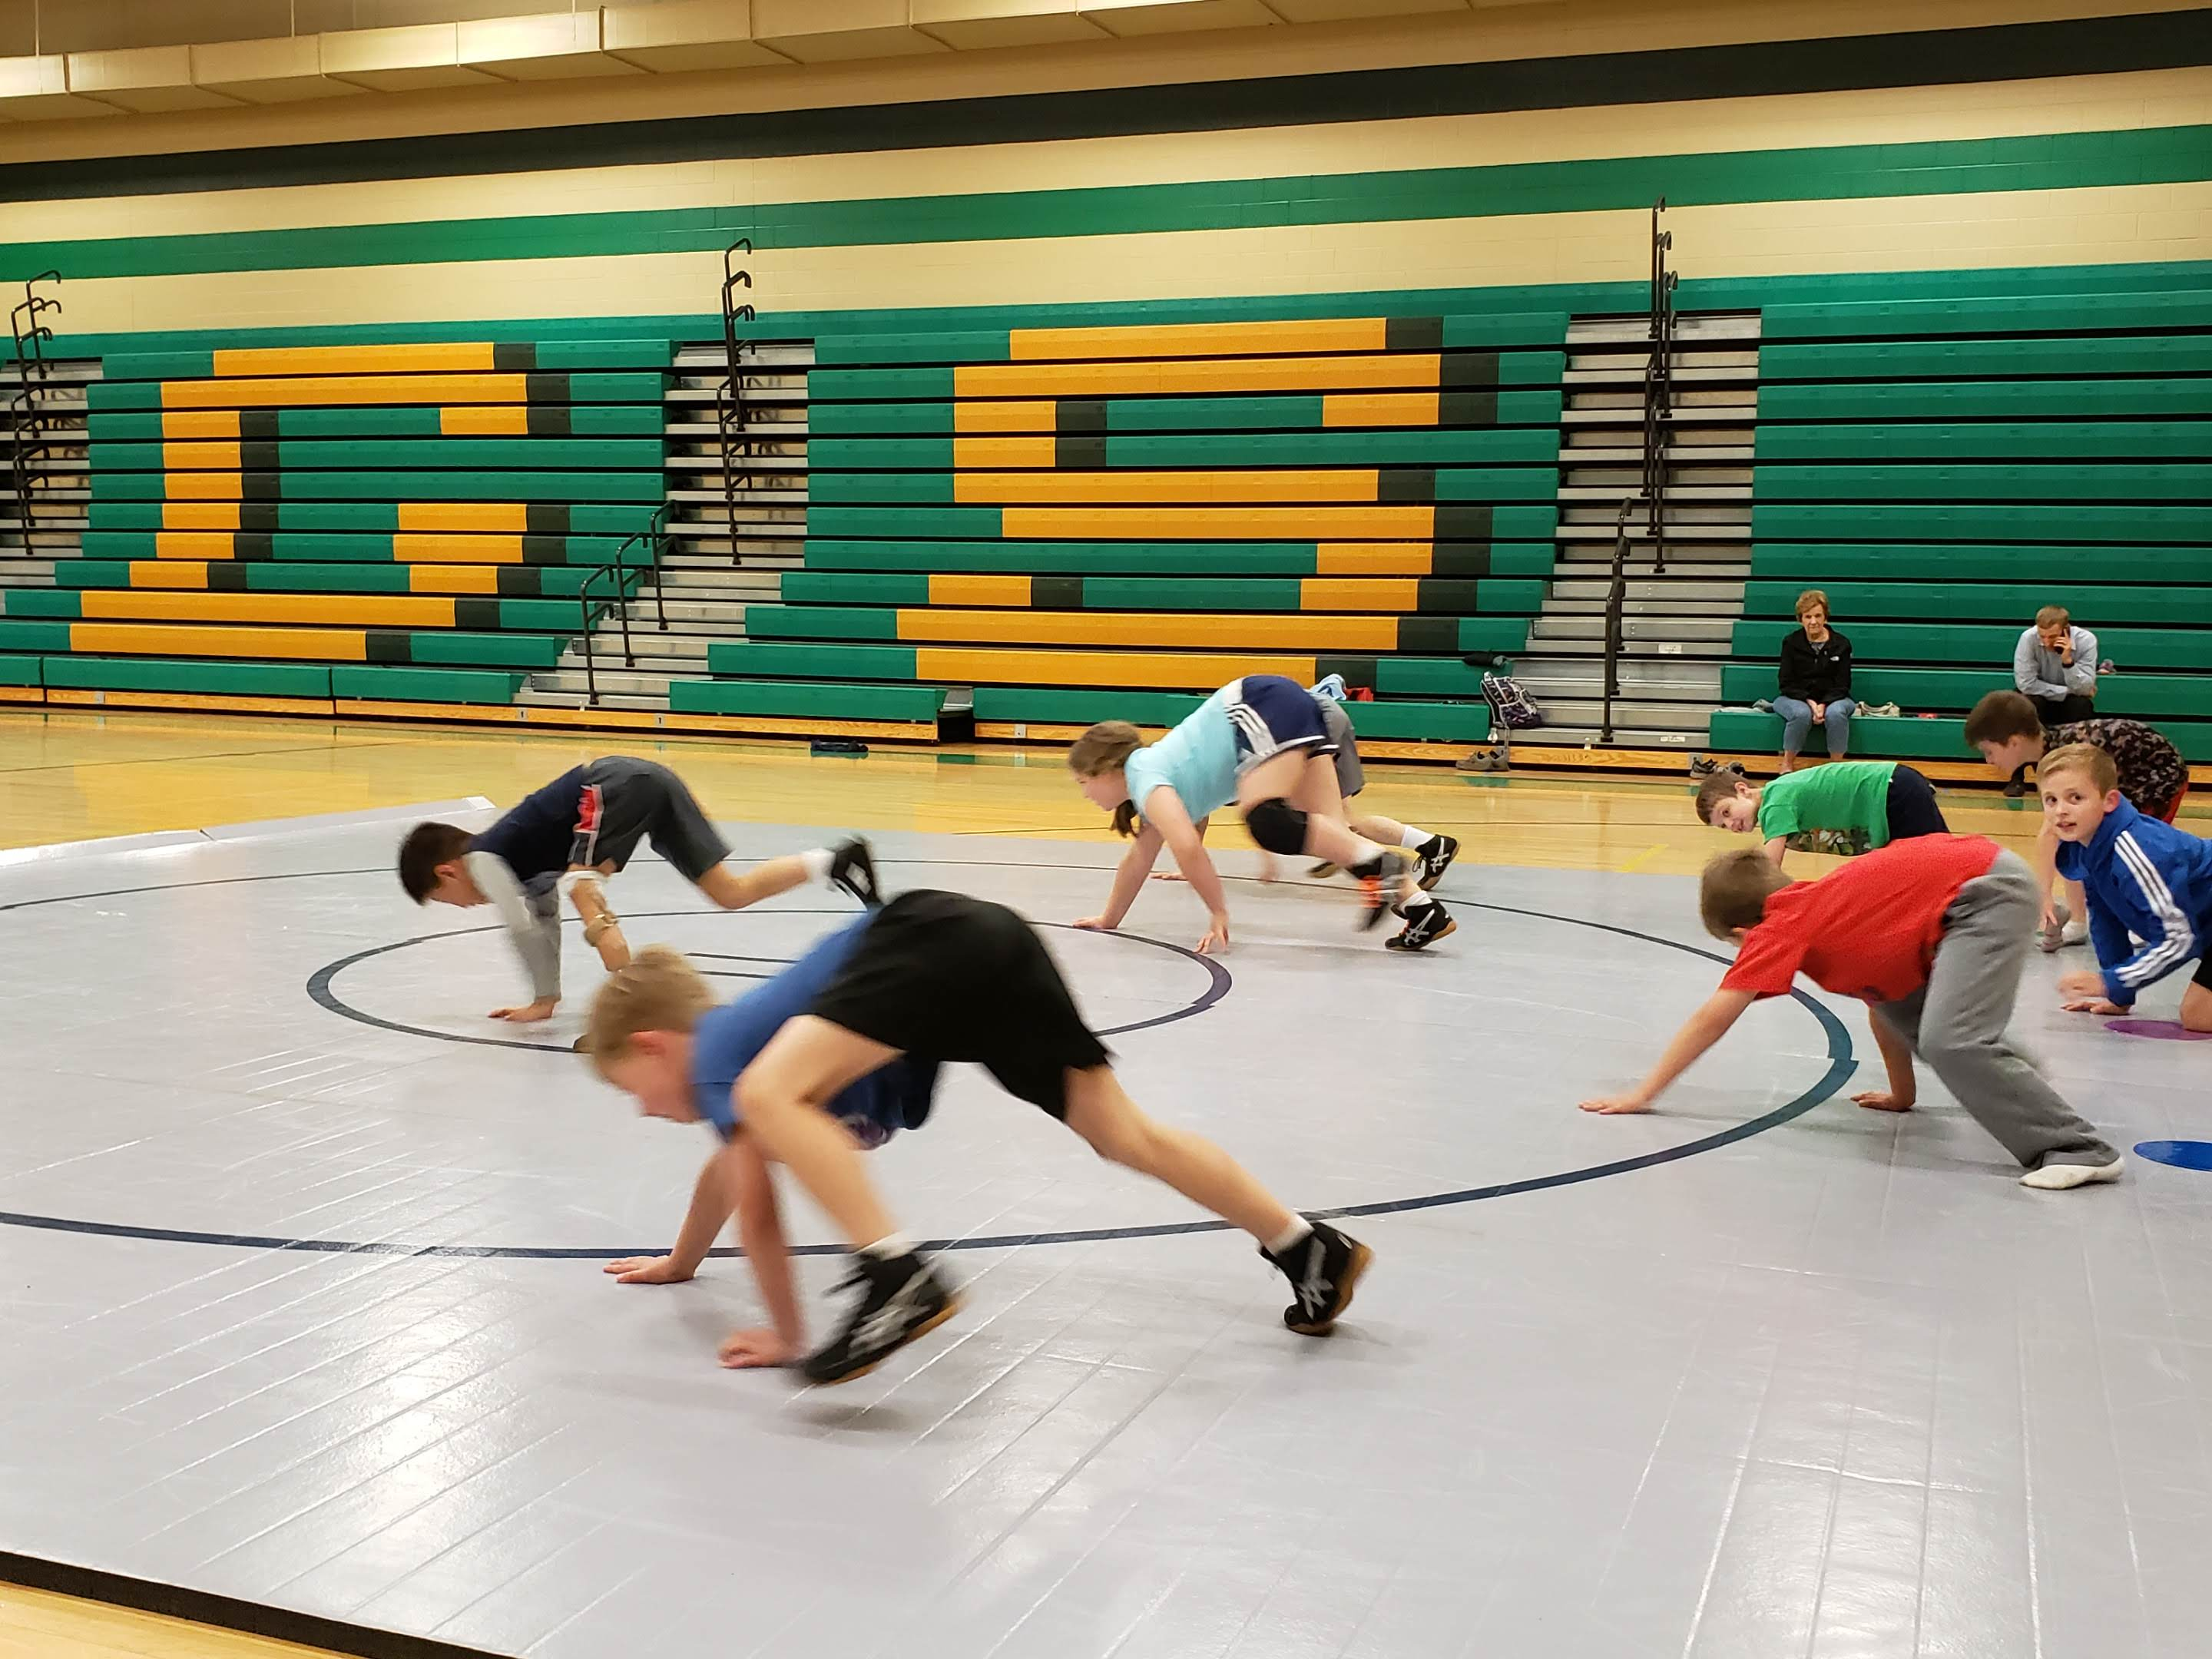 NCAA high school wrestling mats practice